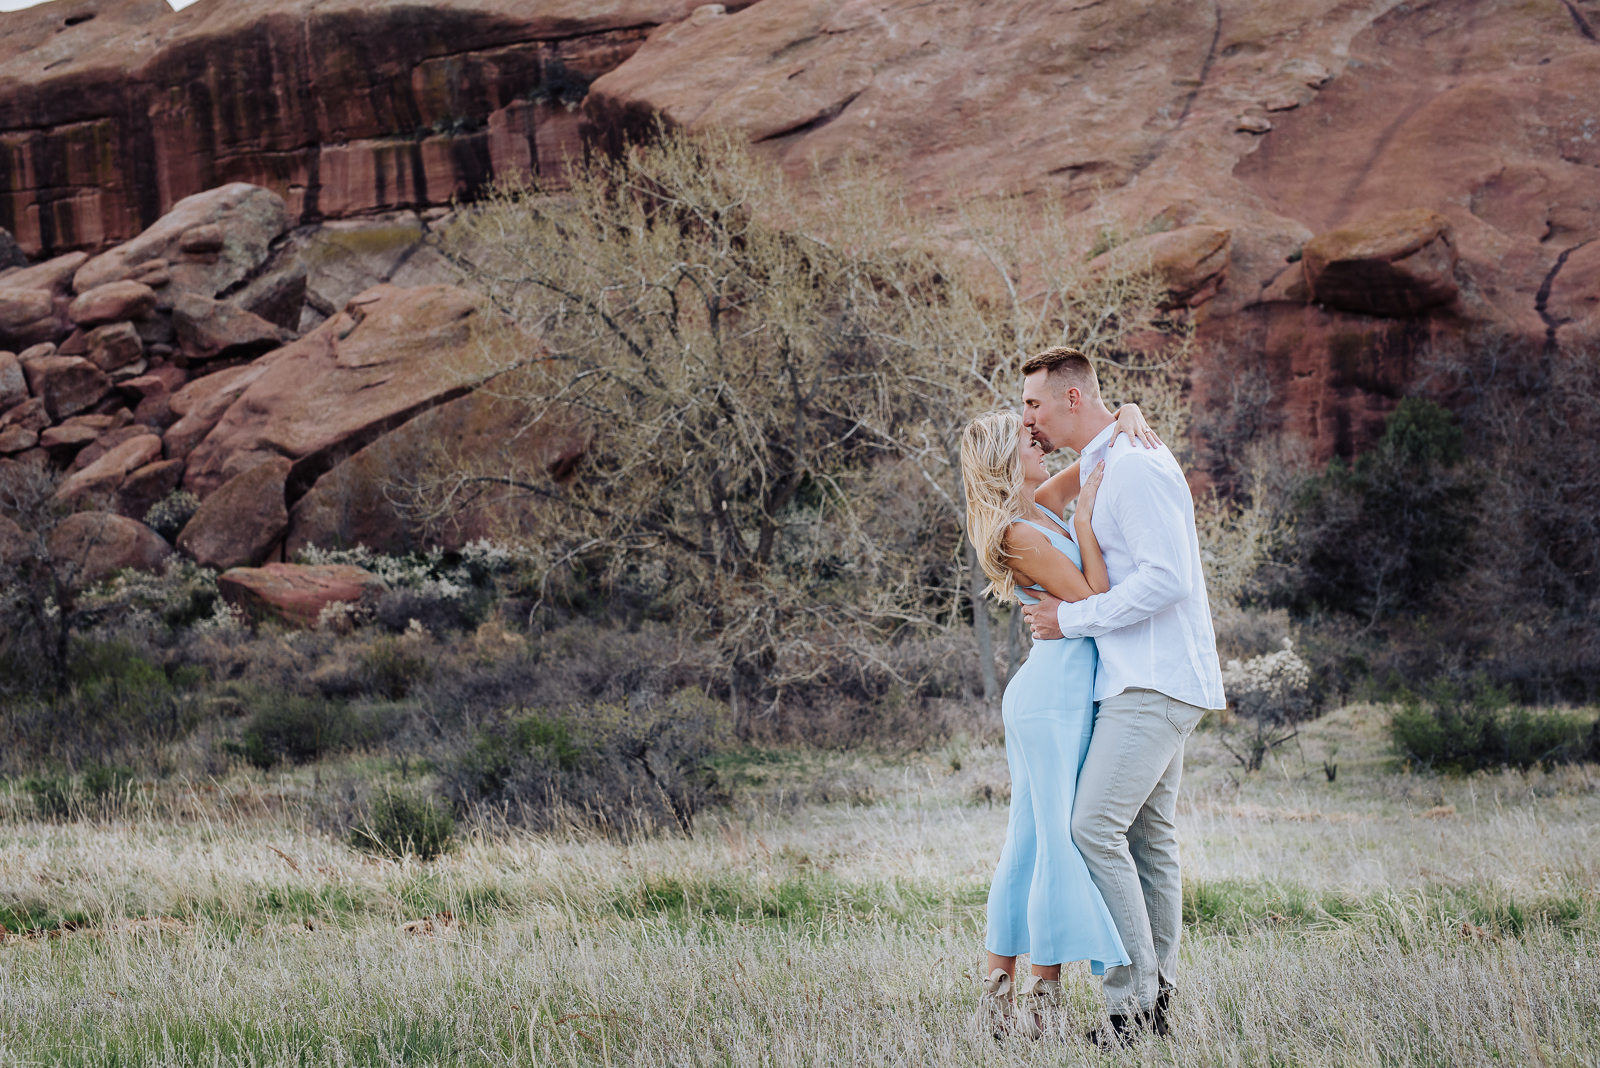 Hannah & Jeff   Engagement Photo   Red Rocks   From the Hip Photo